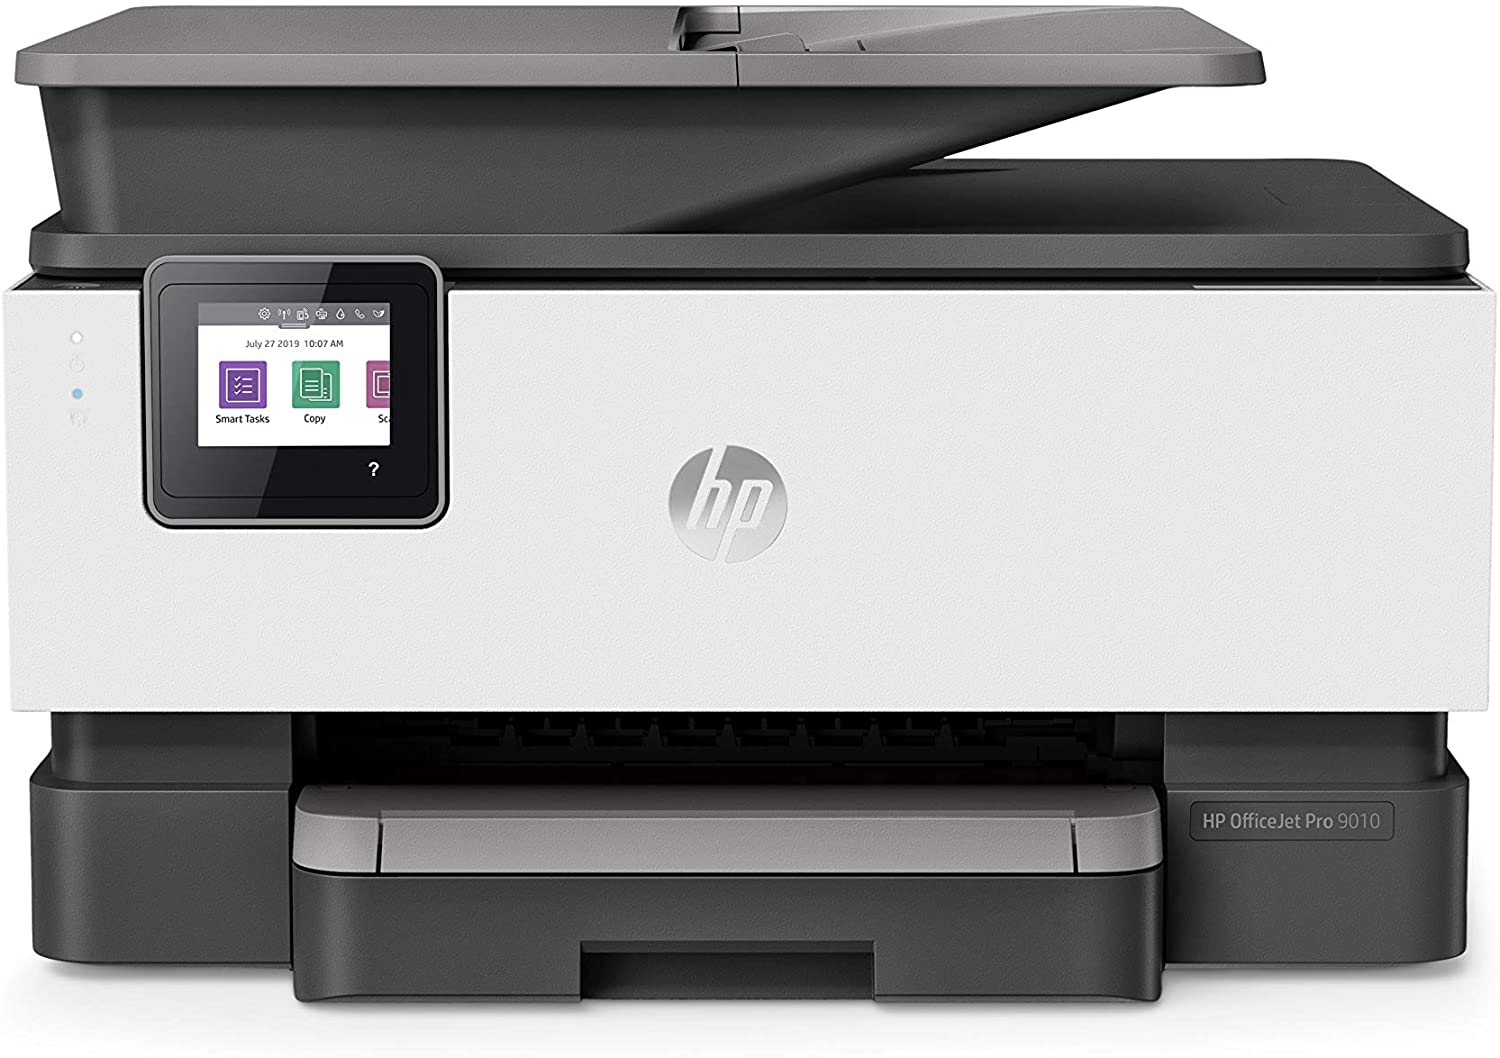 HP OfficeJet Pro 9010 All-in-One Wireless Printer, Instant Ink Ready, Print, Scan, Copy from Your Phone and Voice Activated uk reviews